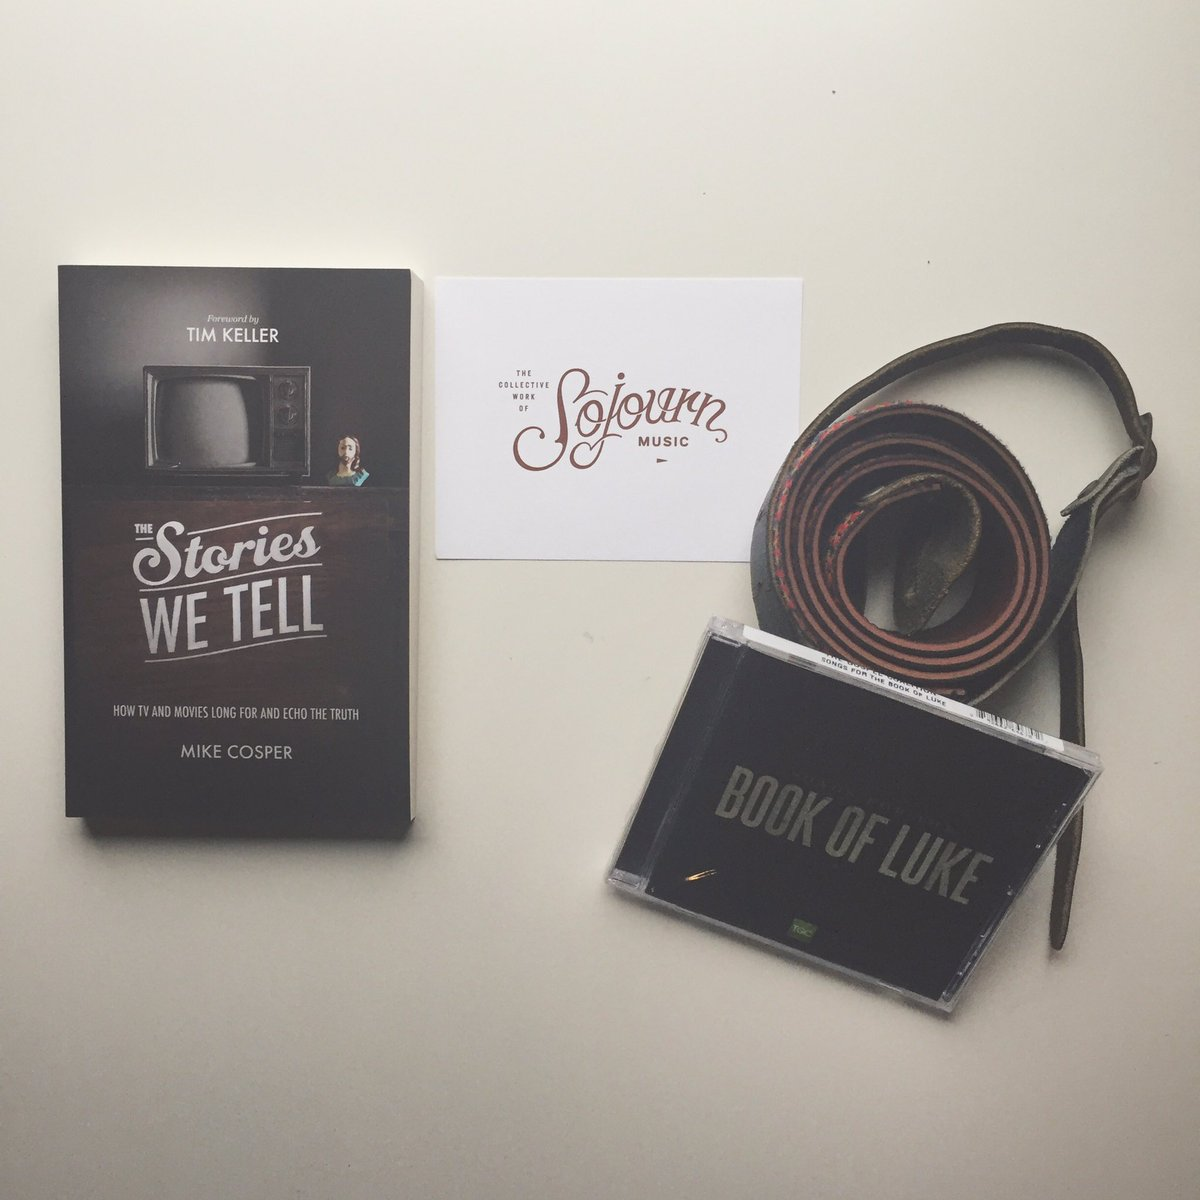 """GIVEAWAY! @MikeCosper's """"The Stories We Tell"""" + our collaborative record w/@TGC —>Follow us & RT by 5/23 to enter! https://t.co/gm14QtWXCP"""